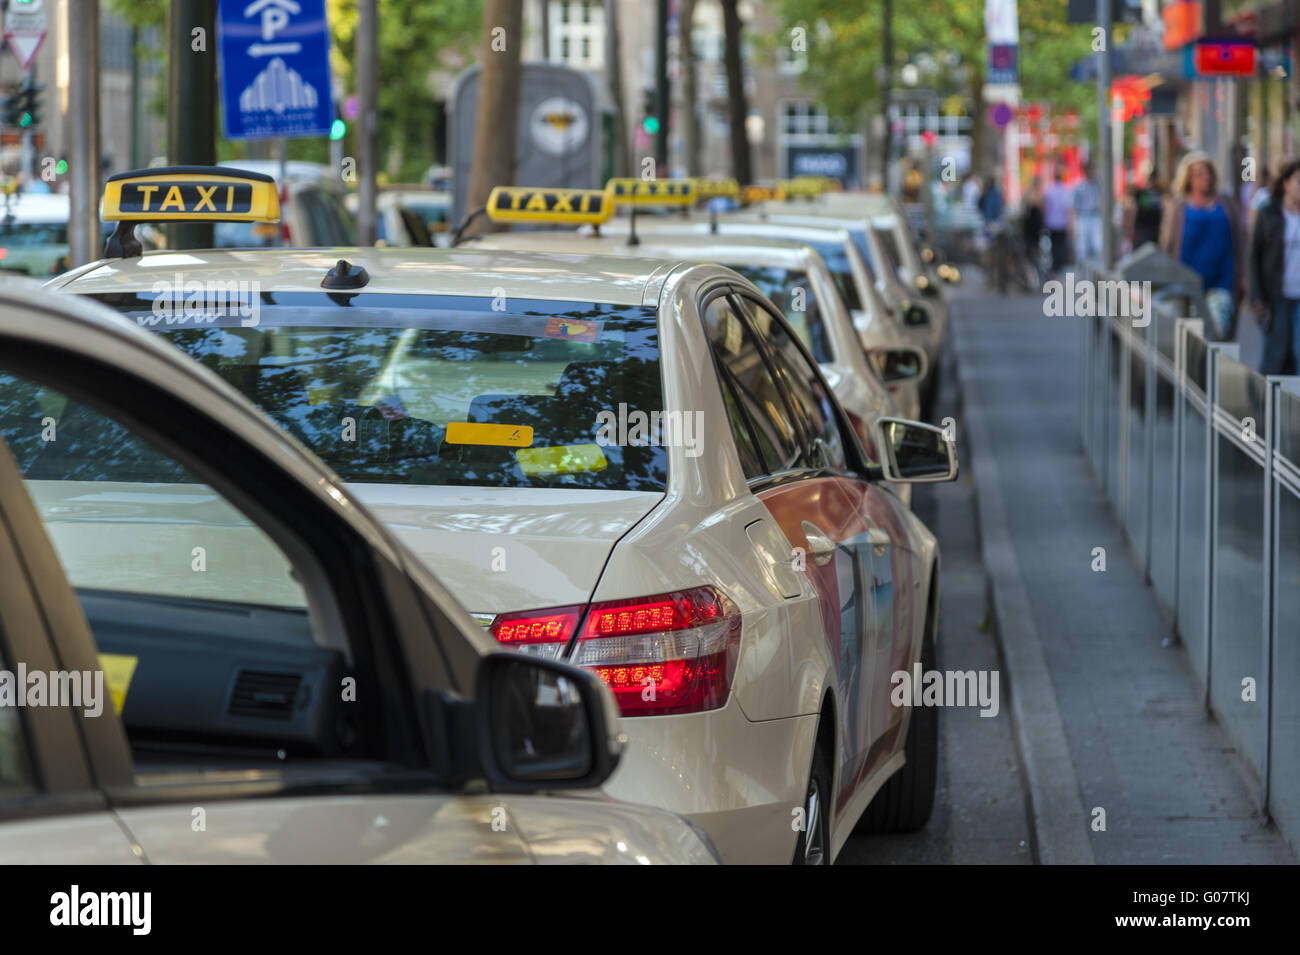 Taxis are one behind the other at a taxi rank - Stock Image